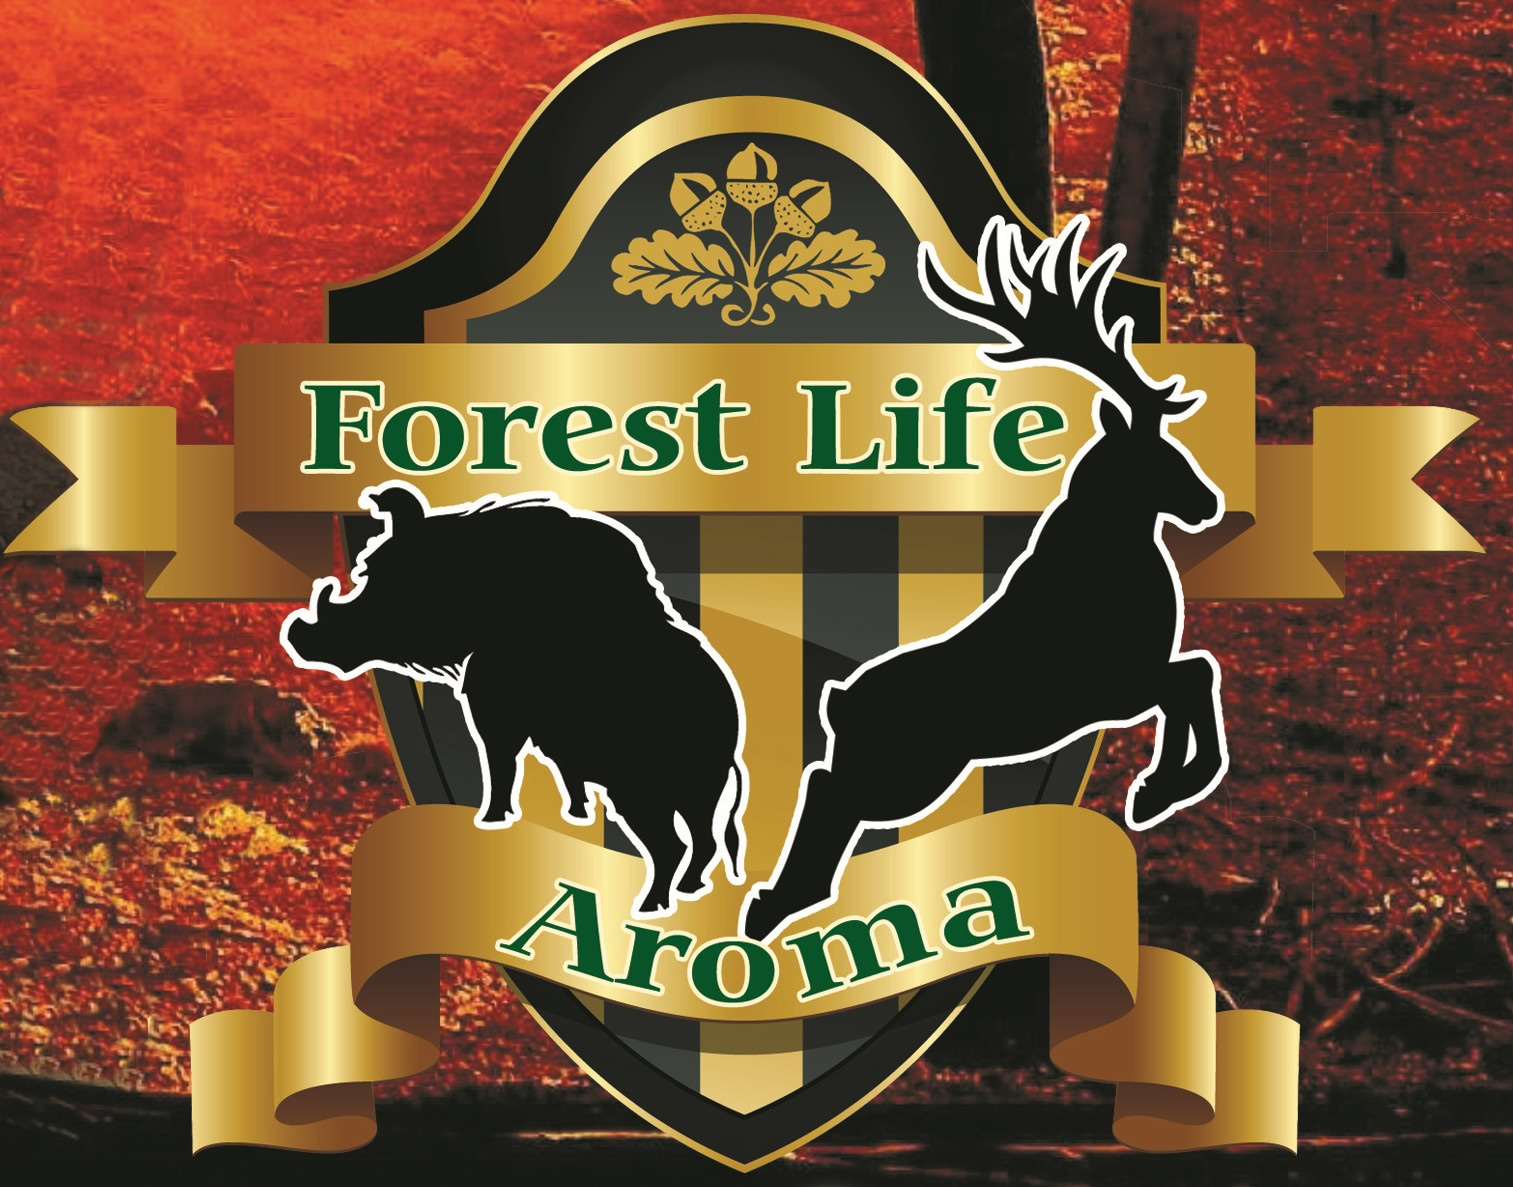 Forest Life Máj aroma 0,5 l